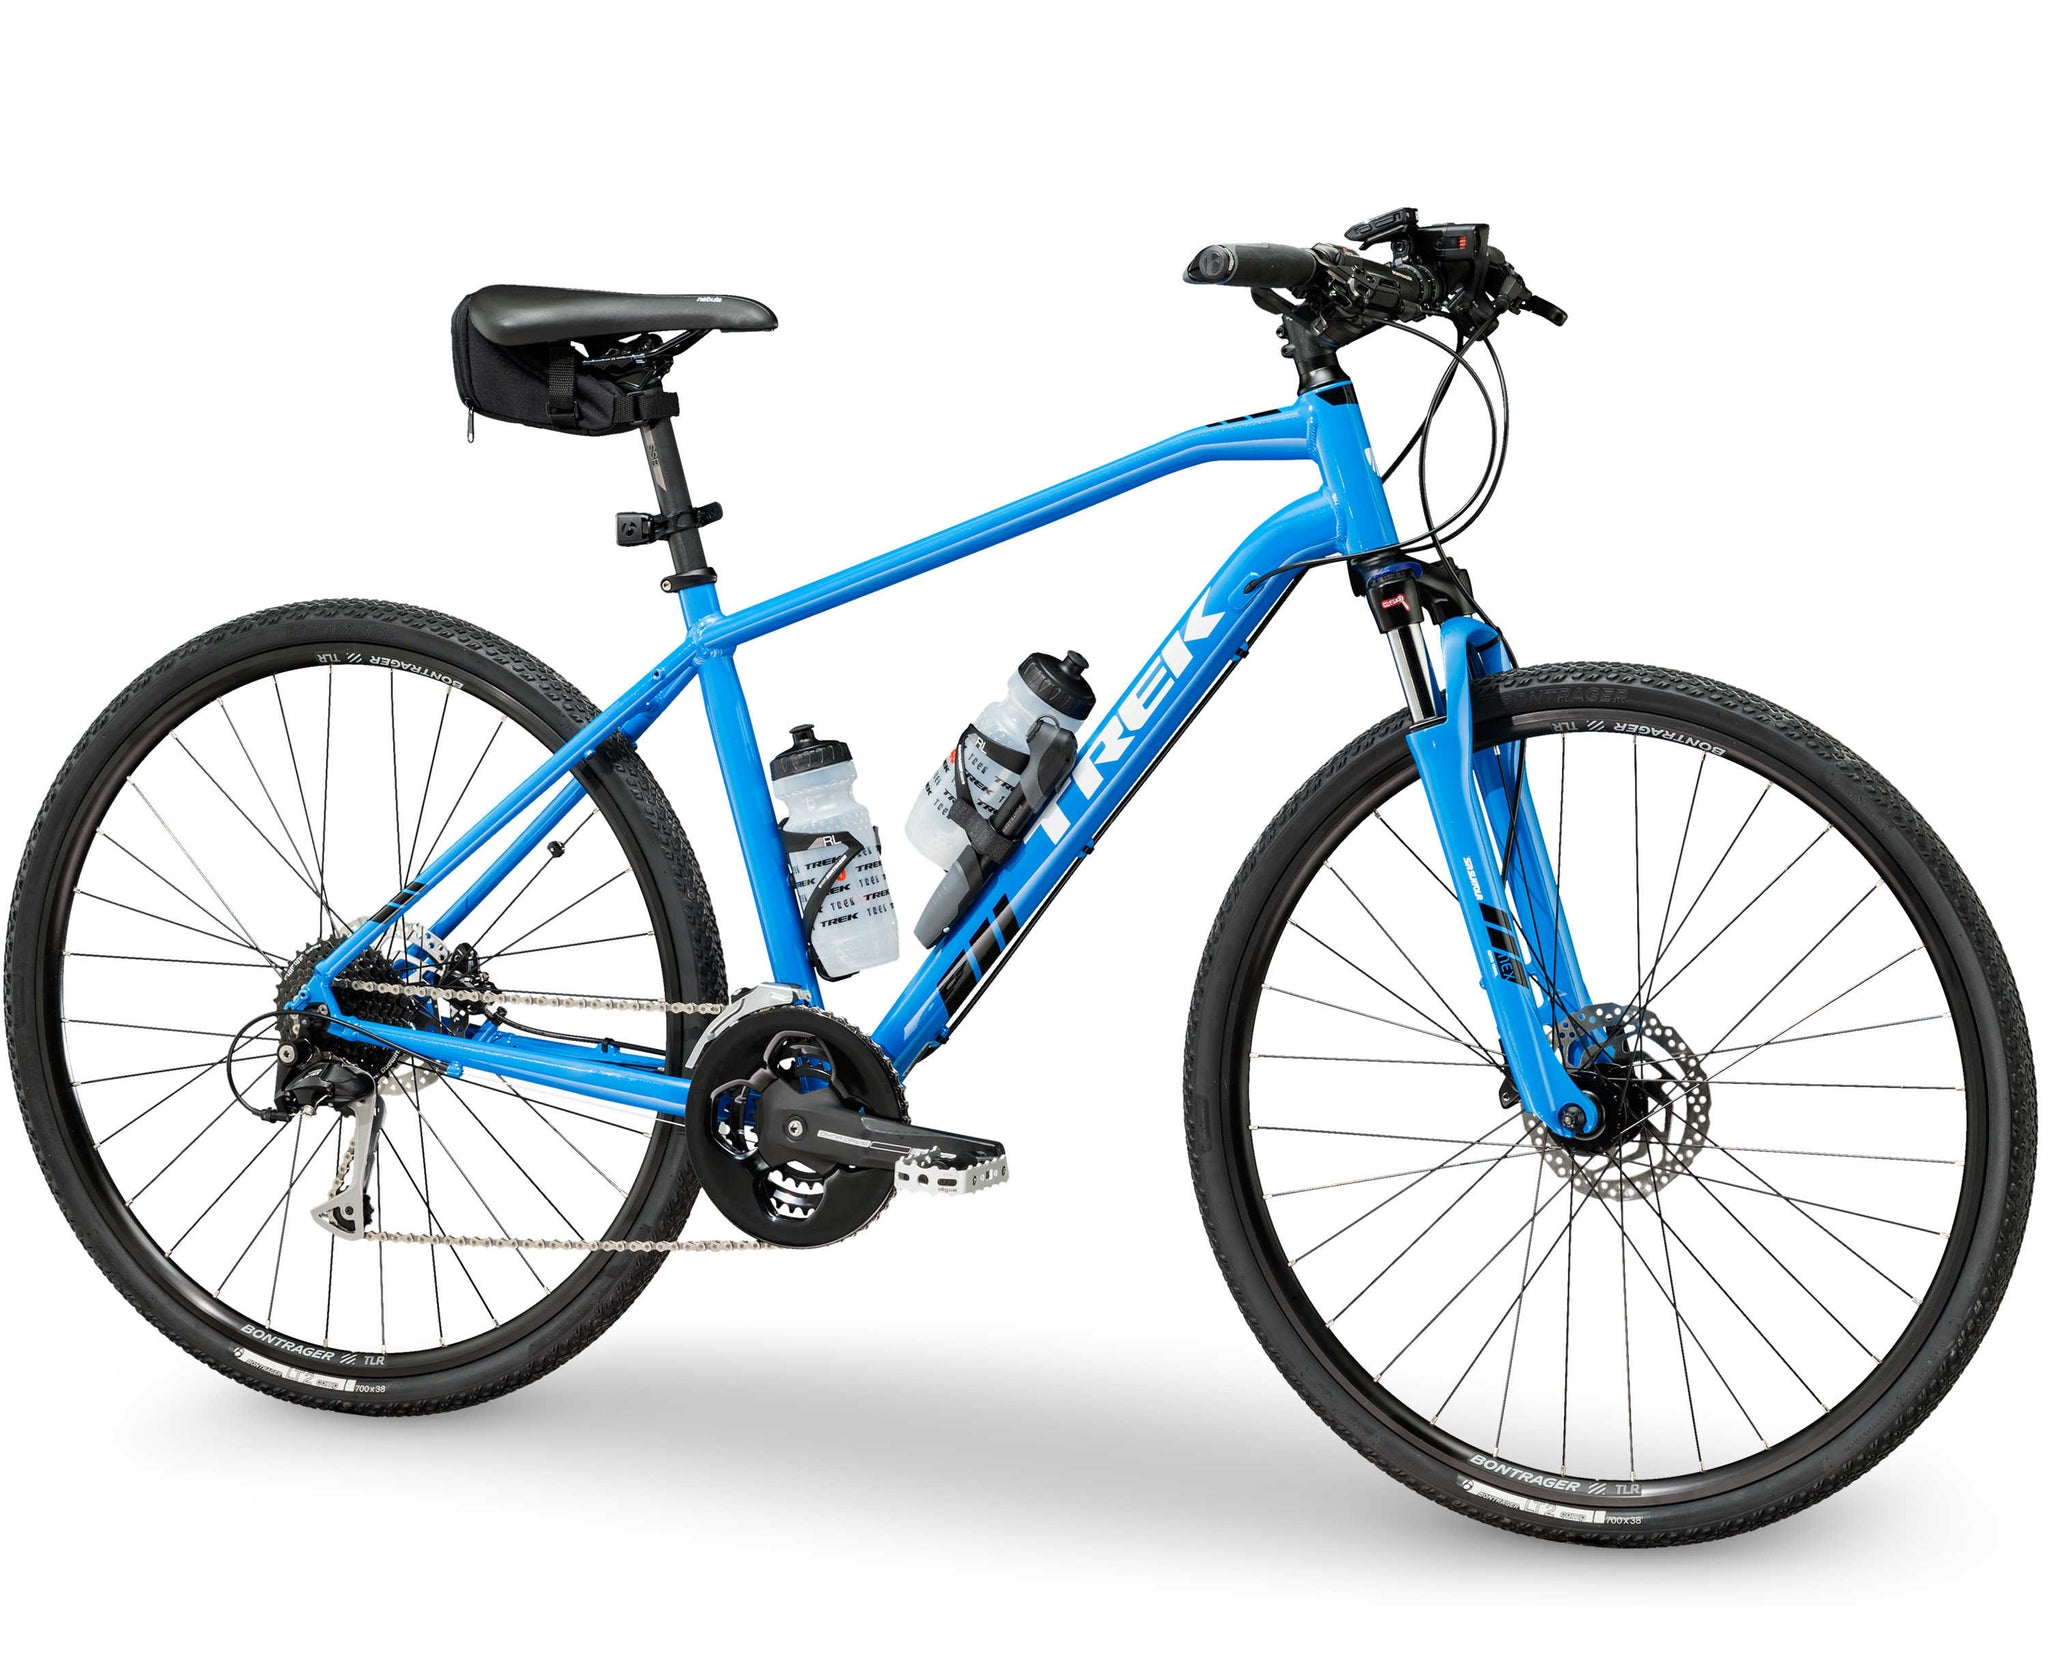 TREK DS 3 BLUE BICYCLE WITH FITTED ACCESSORIES